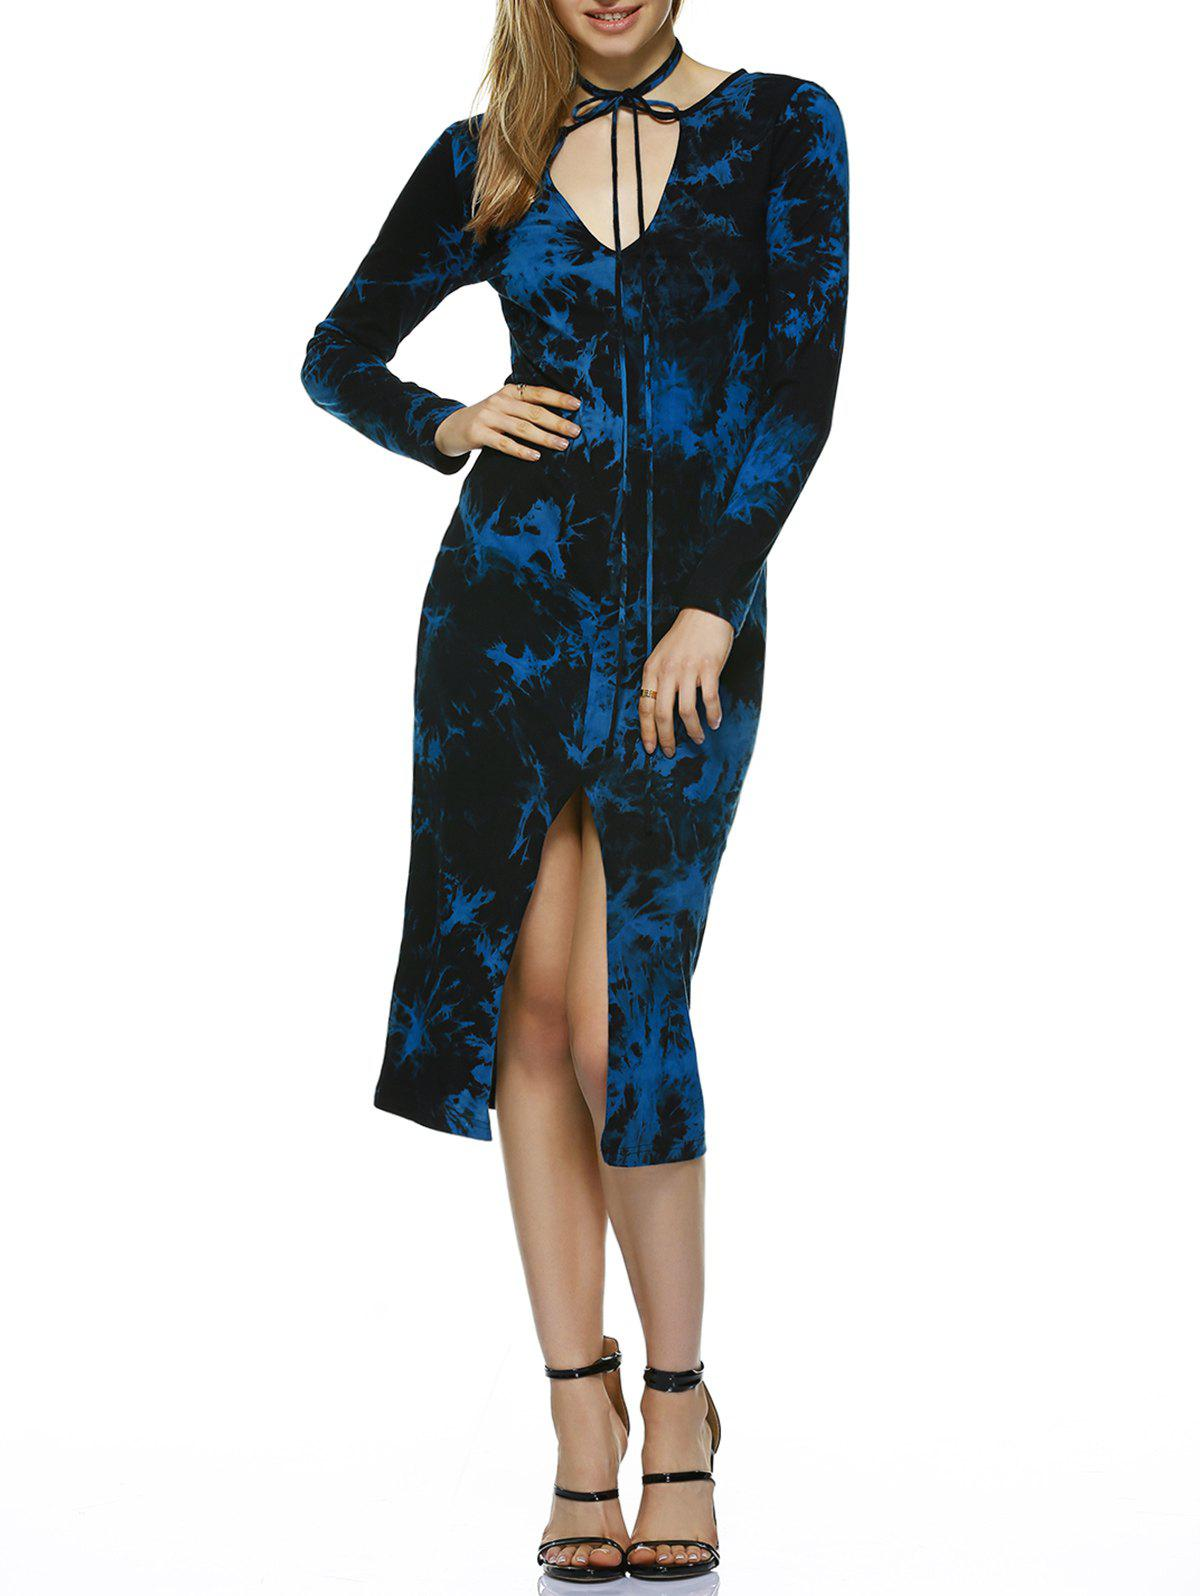 Tie-Dye Cut Out Sheath Dress - BLUE/BLACK XL